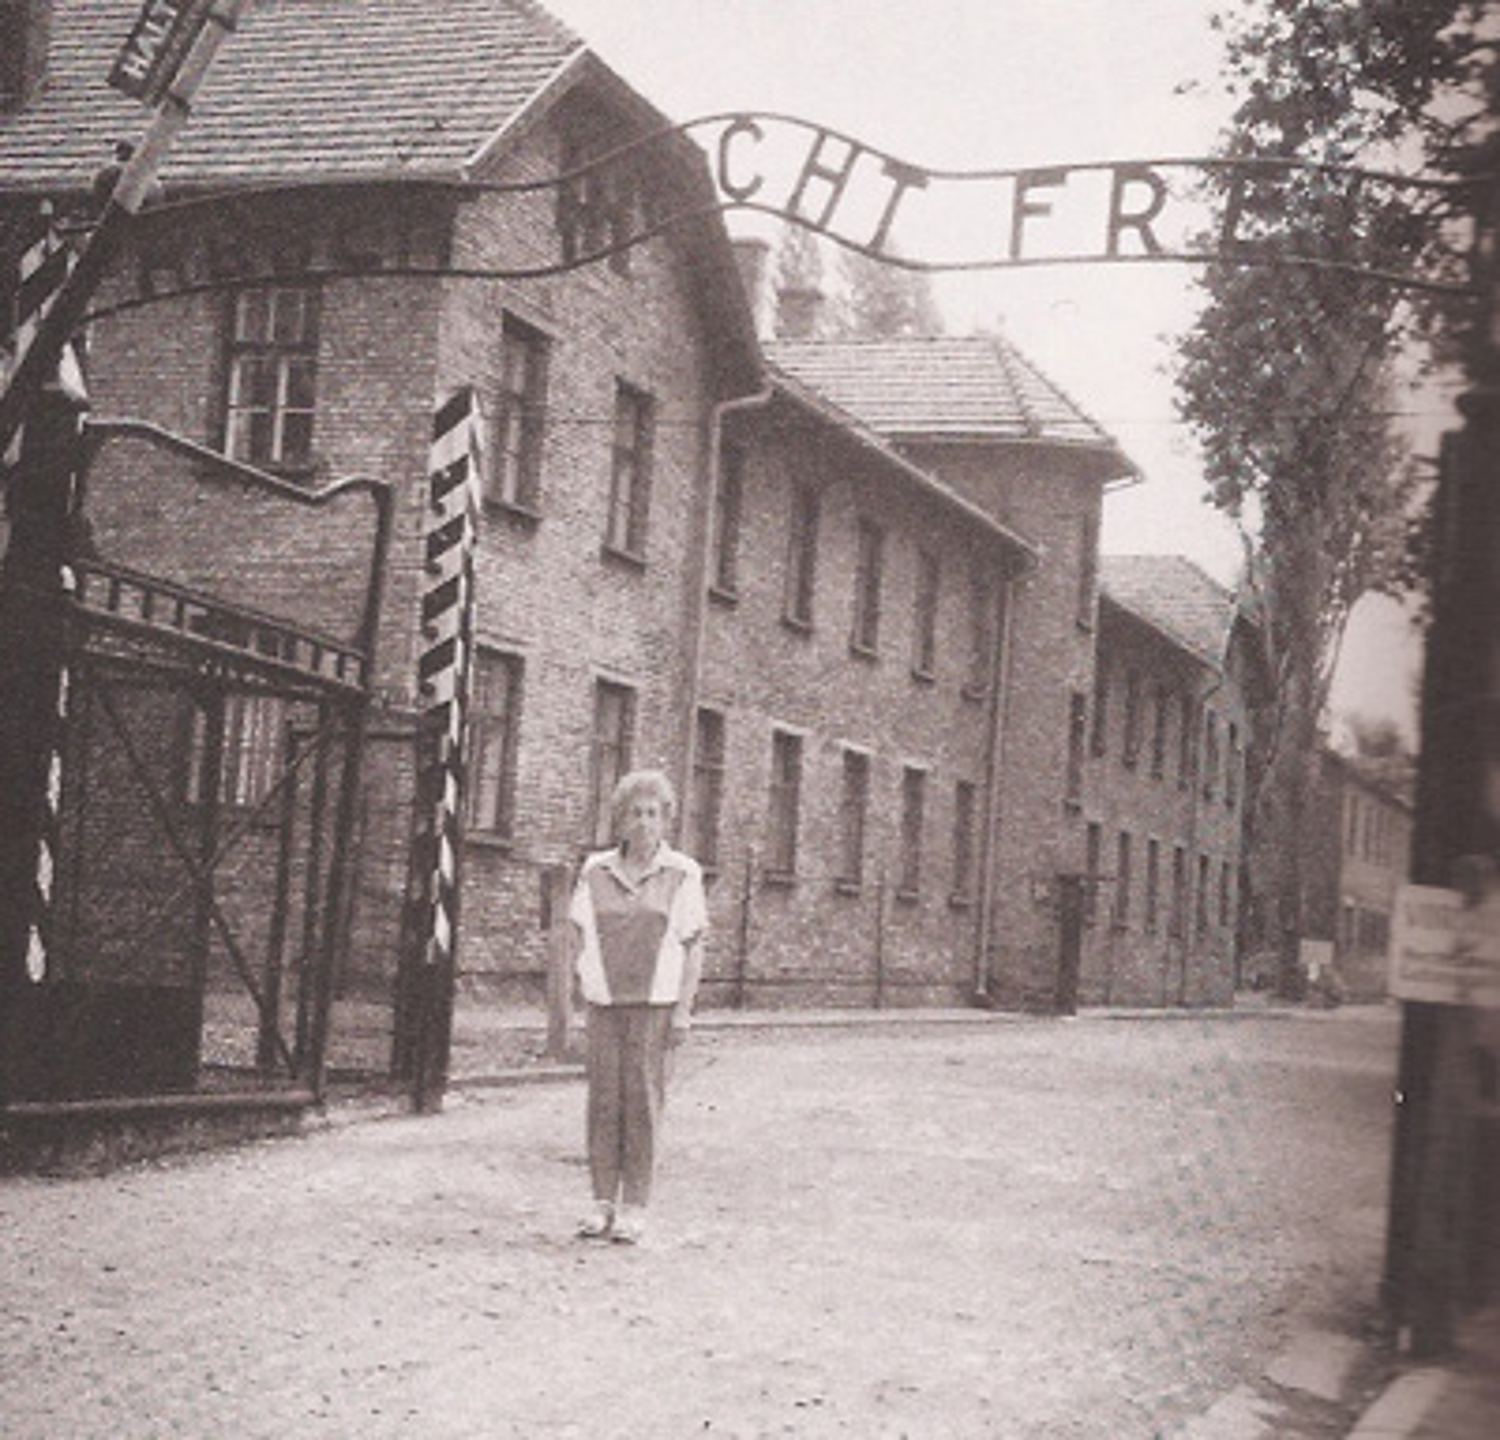 Rena, #1716 in Auschwitz, survived over 3 years.